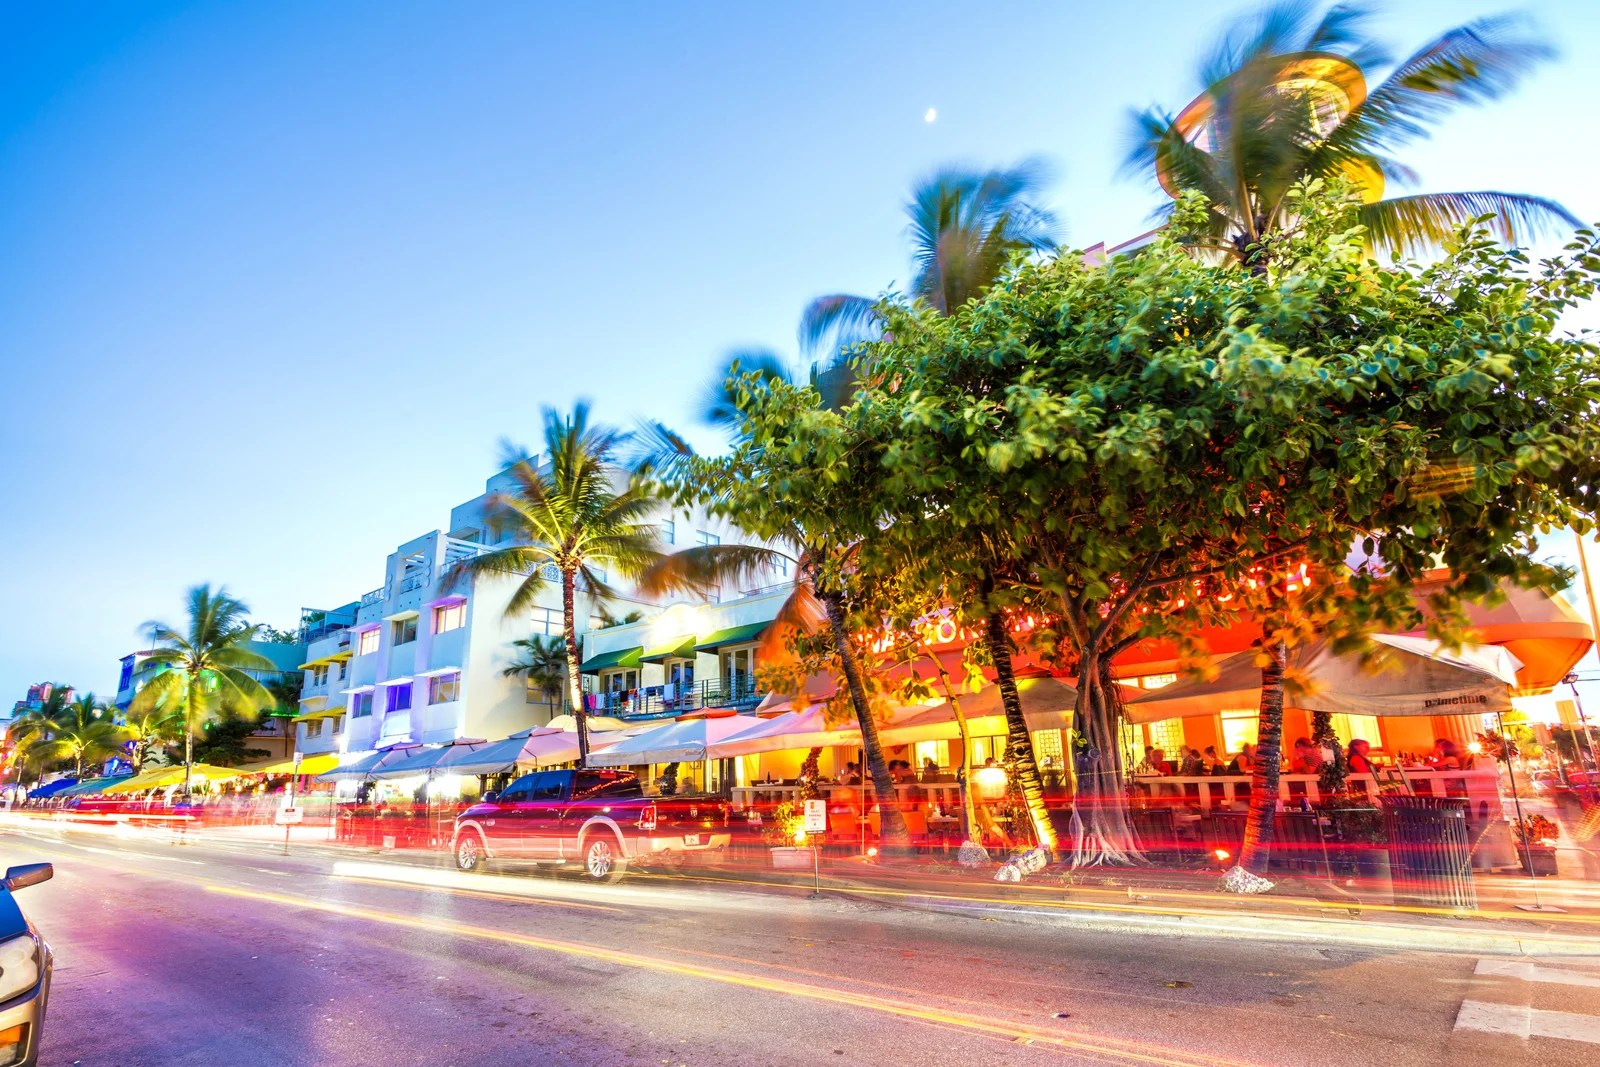 A beginner's guide to visiting Miami: Everything you need to eat, see and do